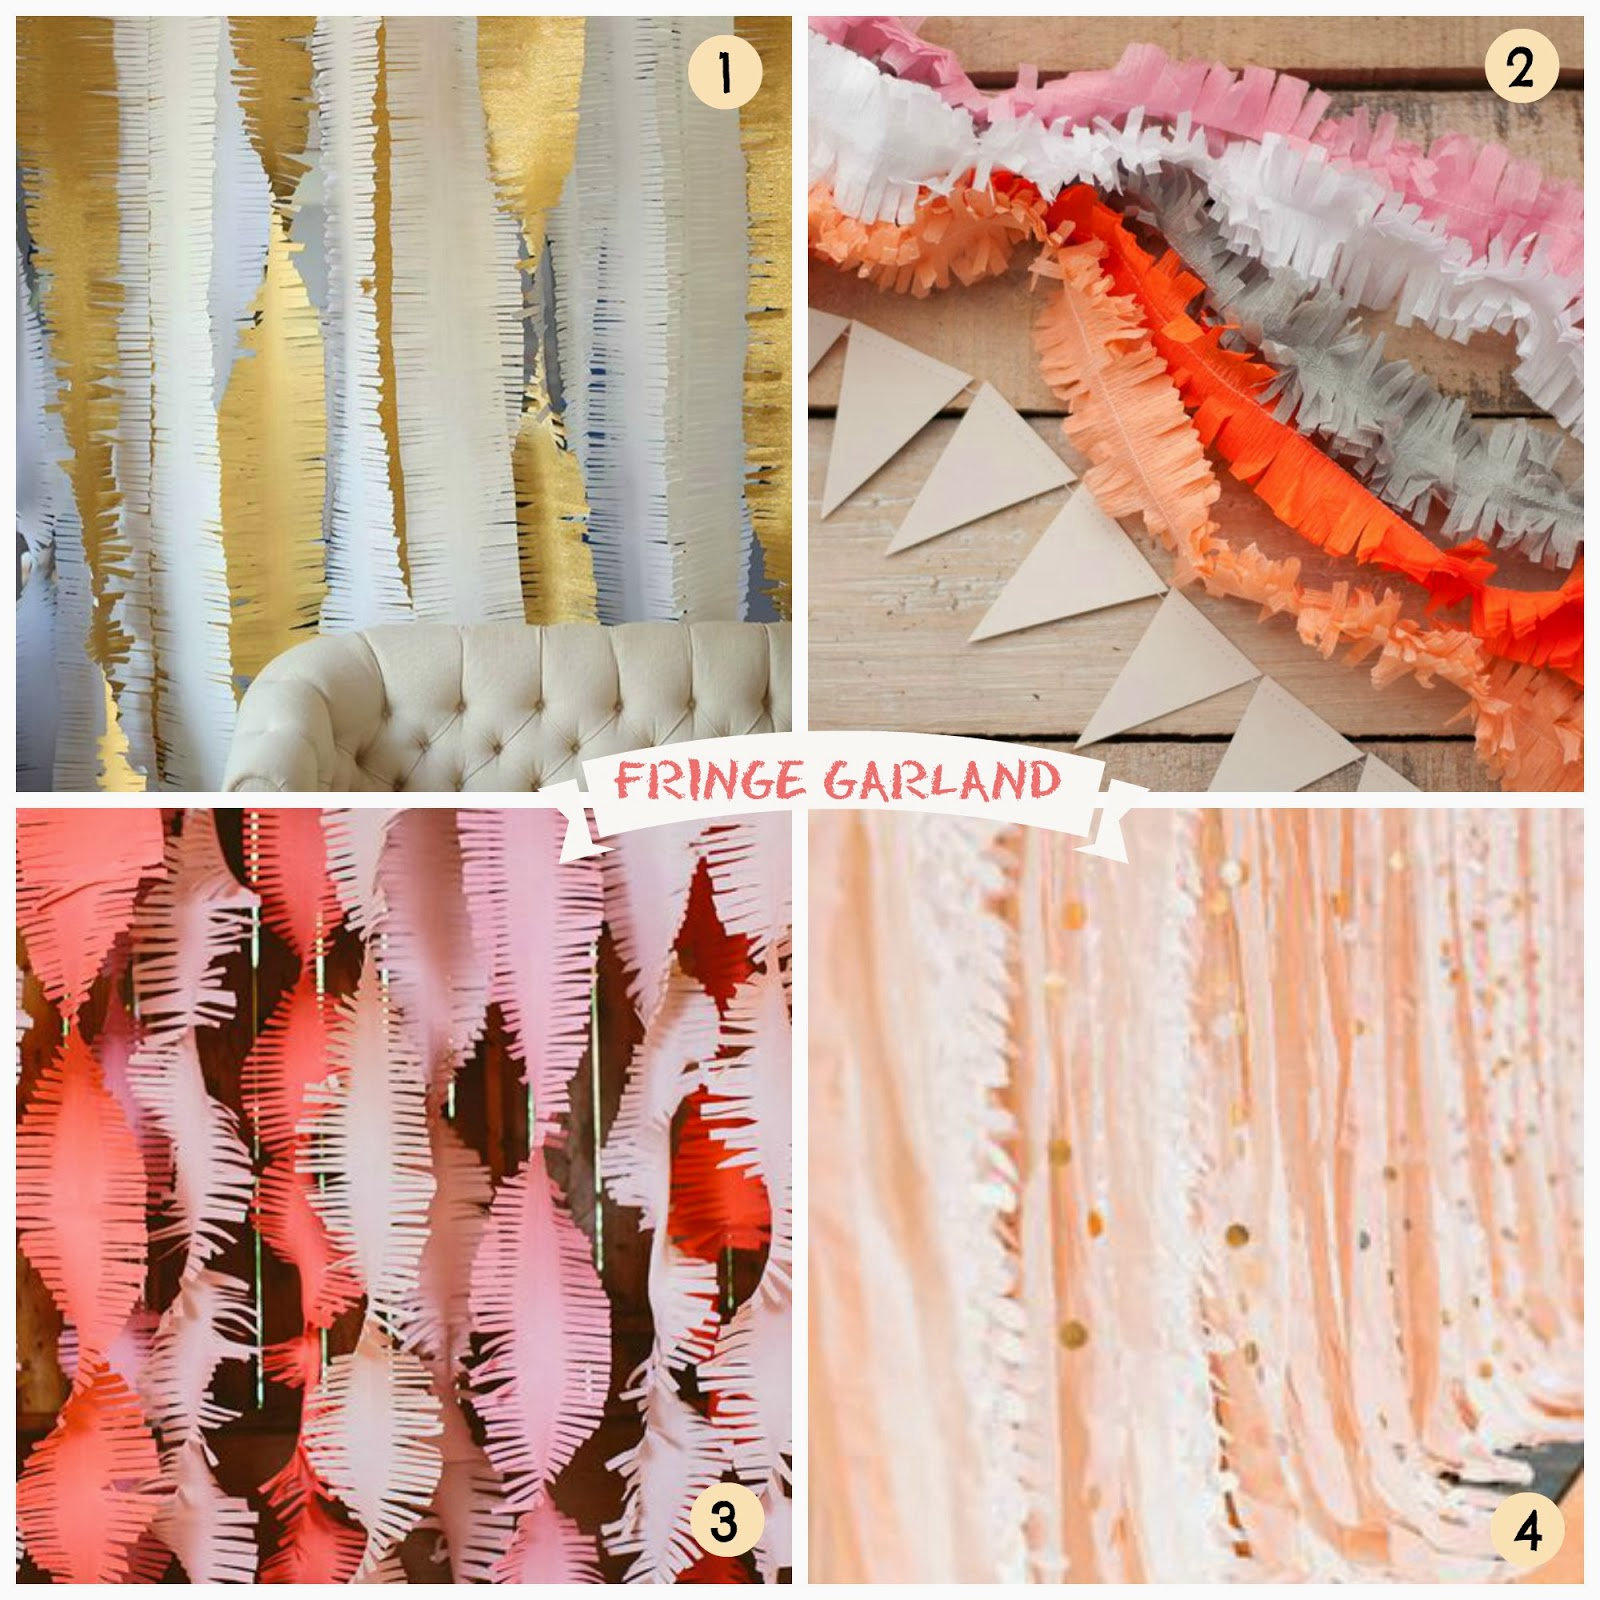 Decorazioni con la carta crespa fringe garland - Carta crespa decorazioni ...